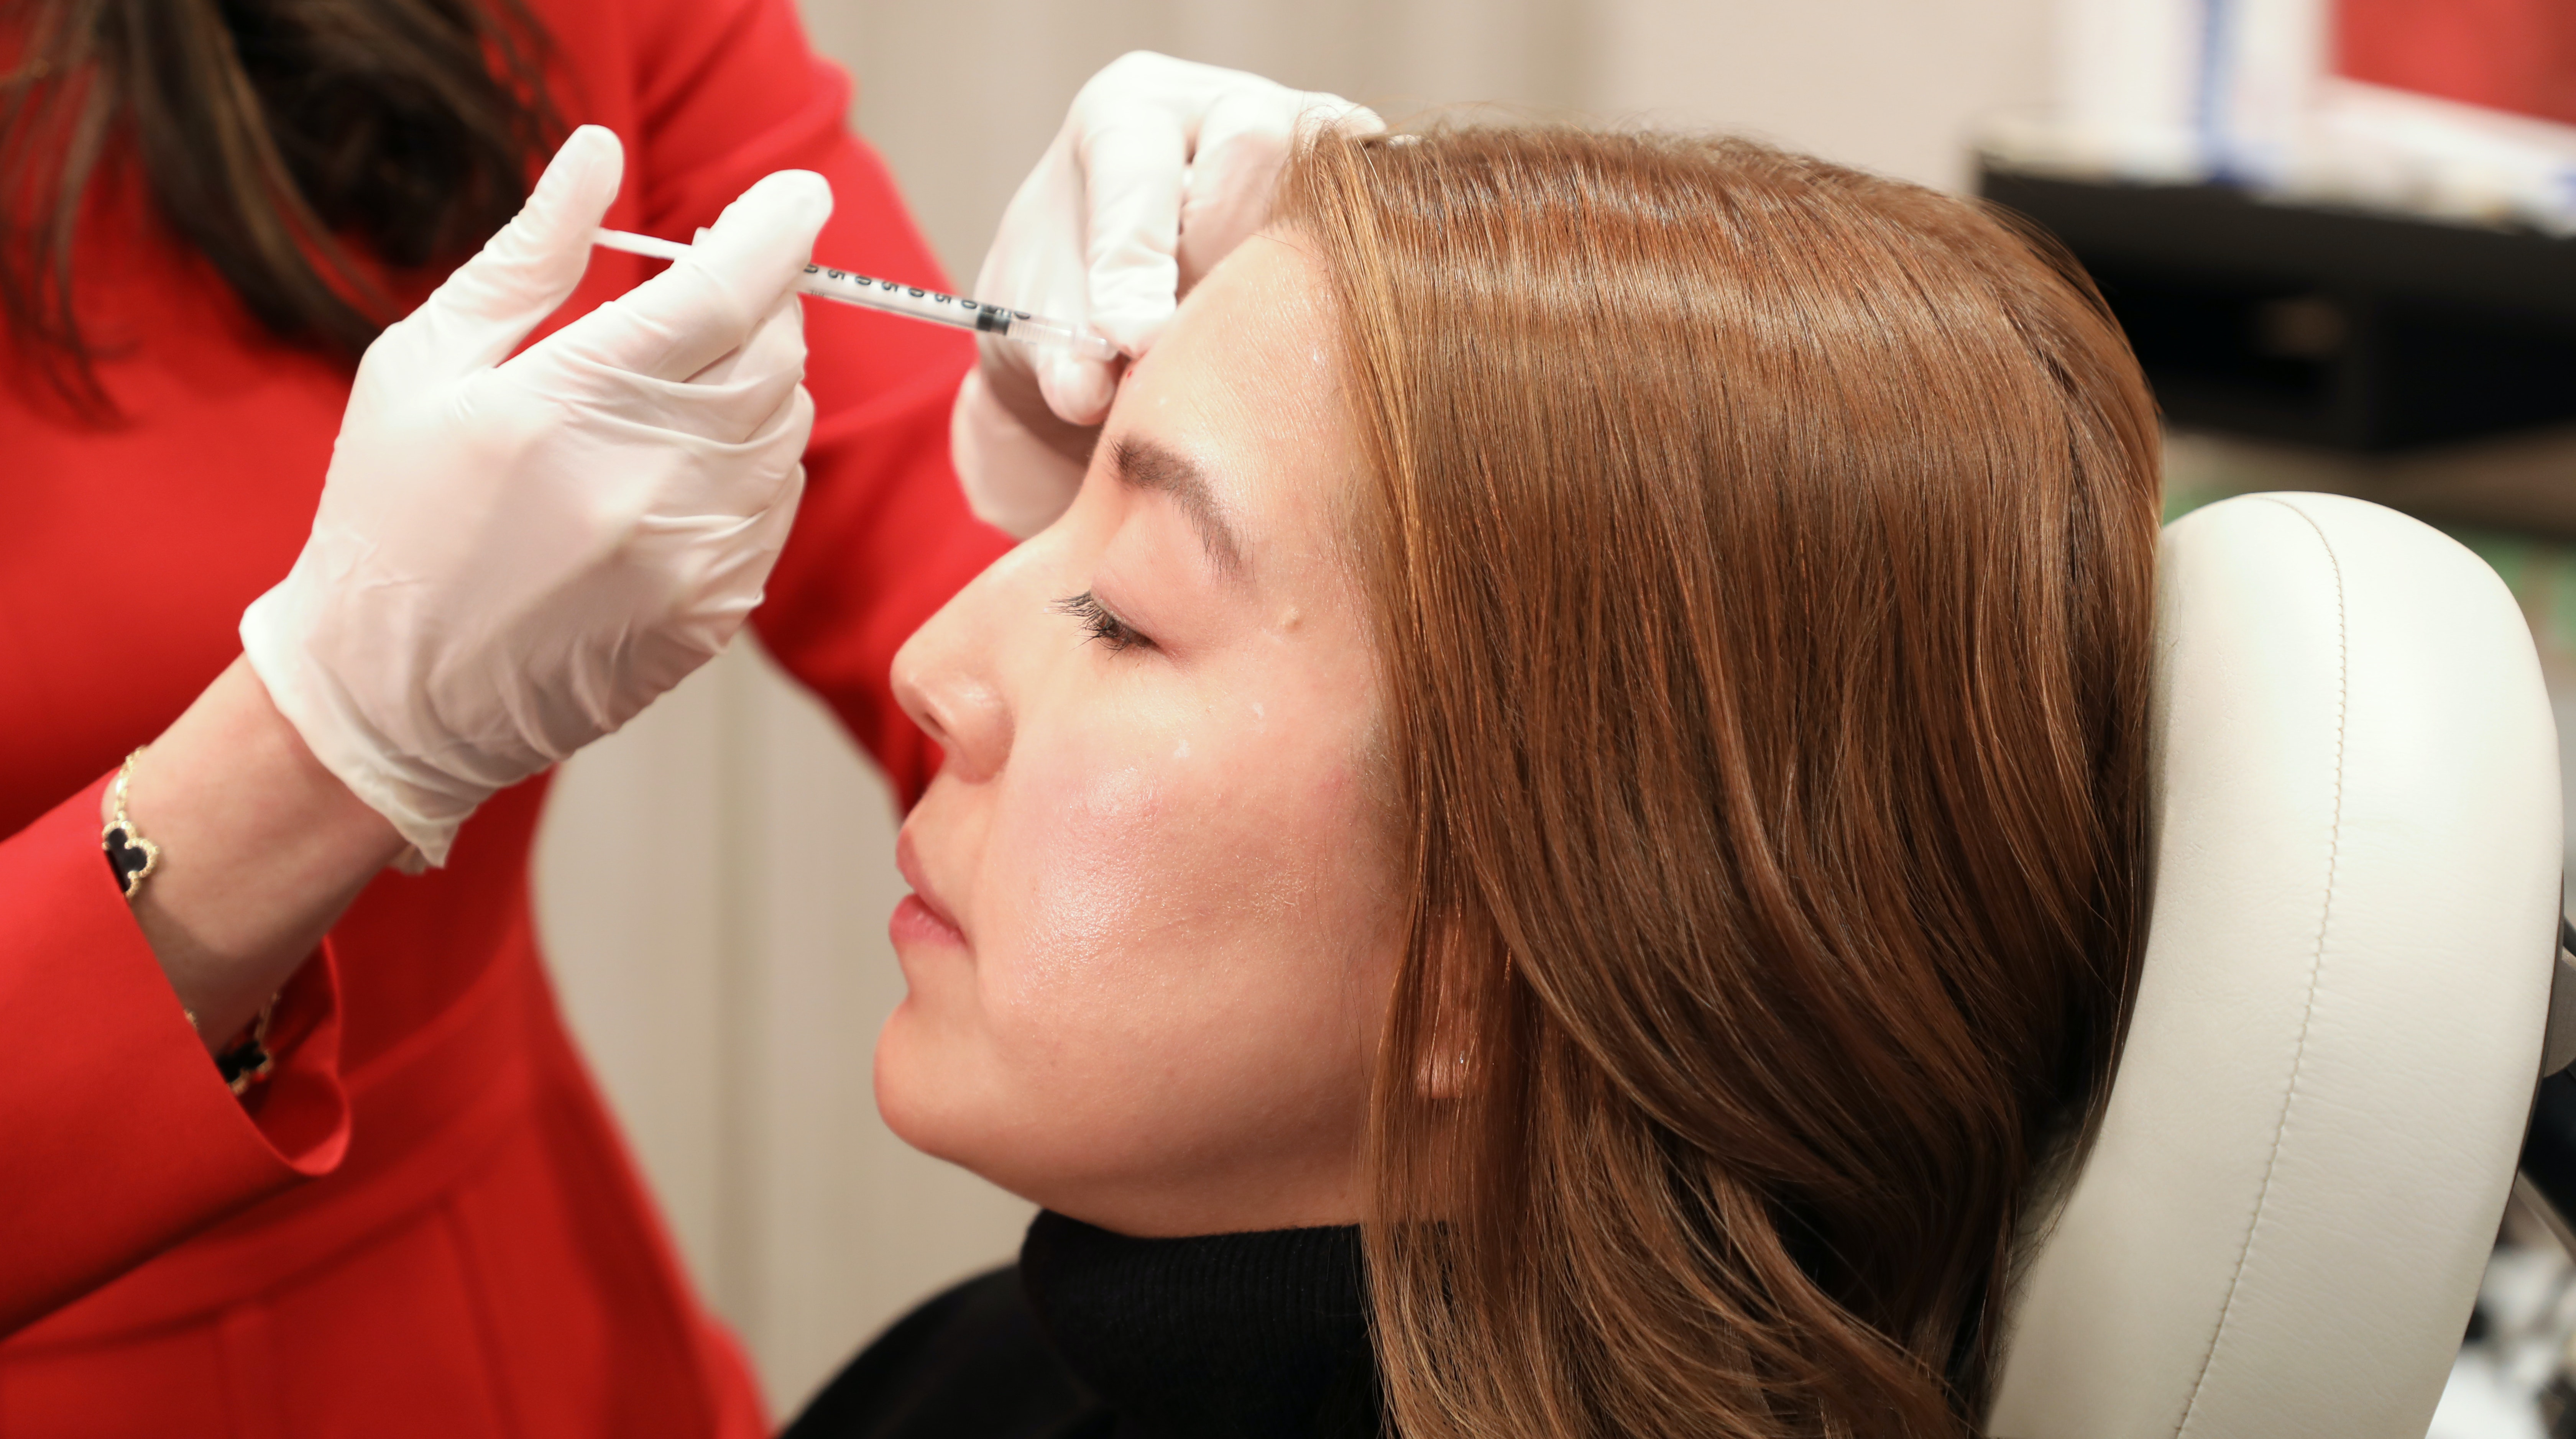 Under the Needle: A 39-Year-Old Gets an Injectable Wrinkle Reducer and Filler For the First Time